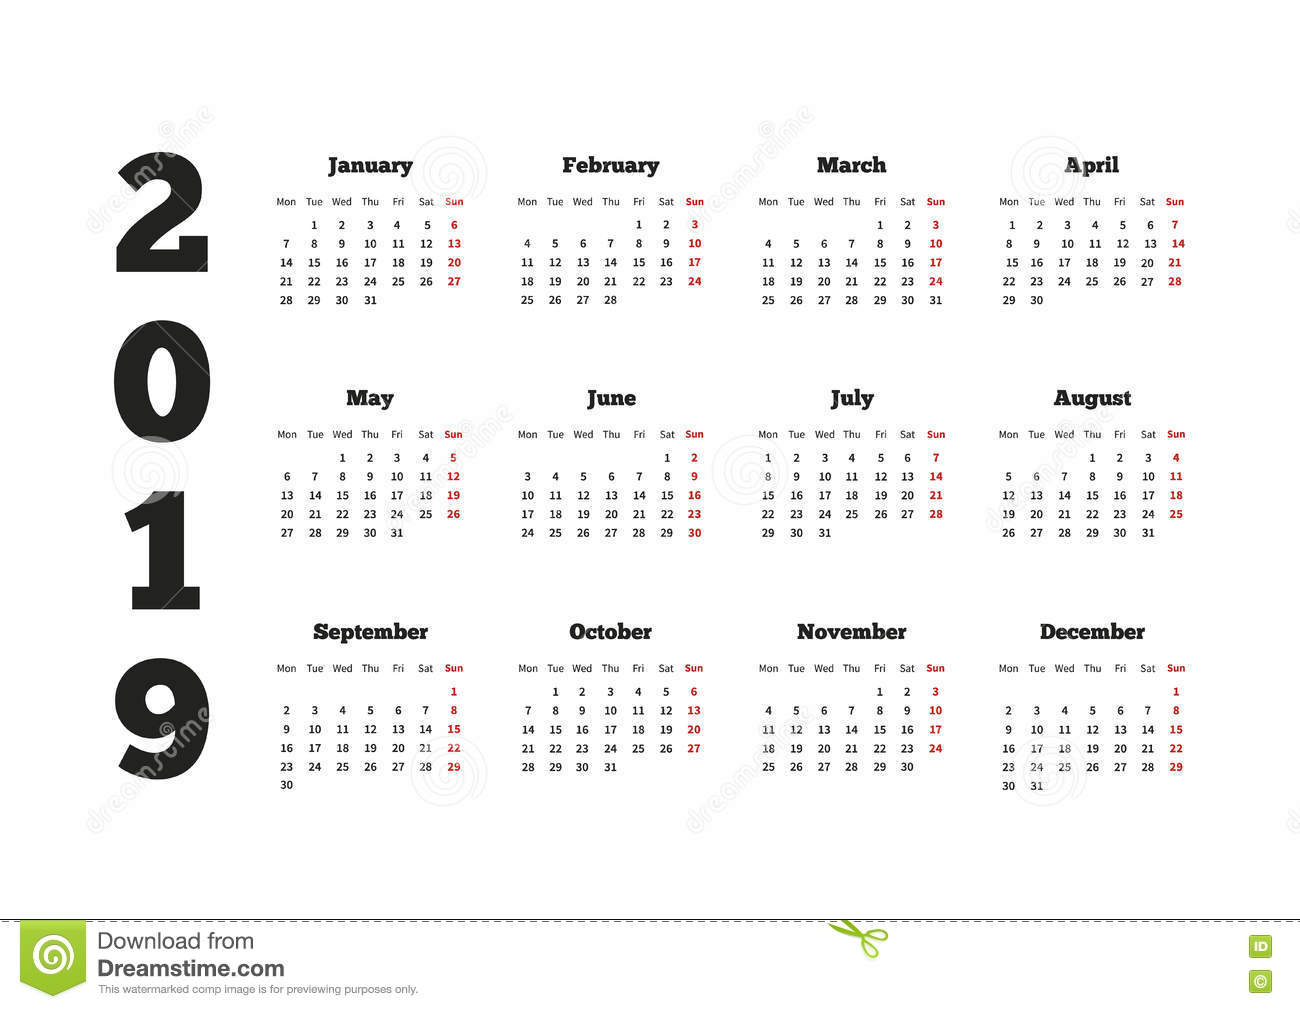 2019 Whole Year Calendar With Inspiring Yearly